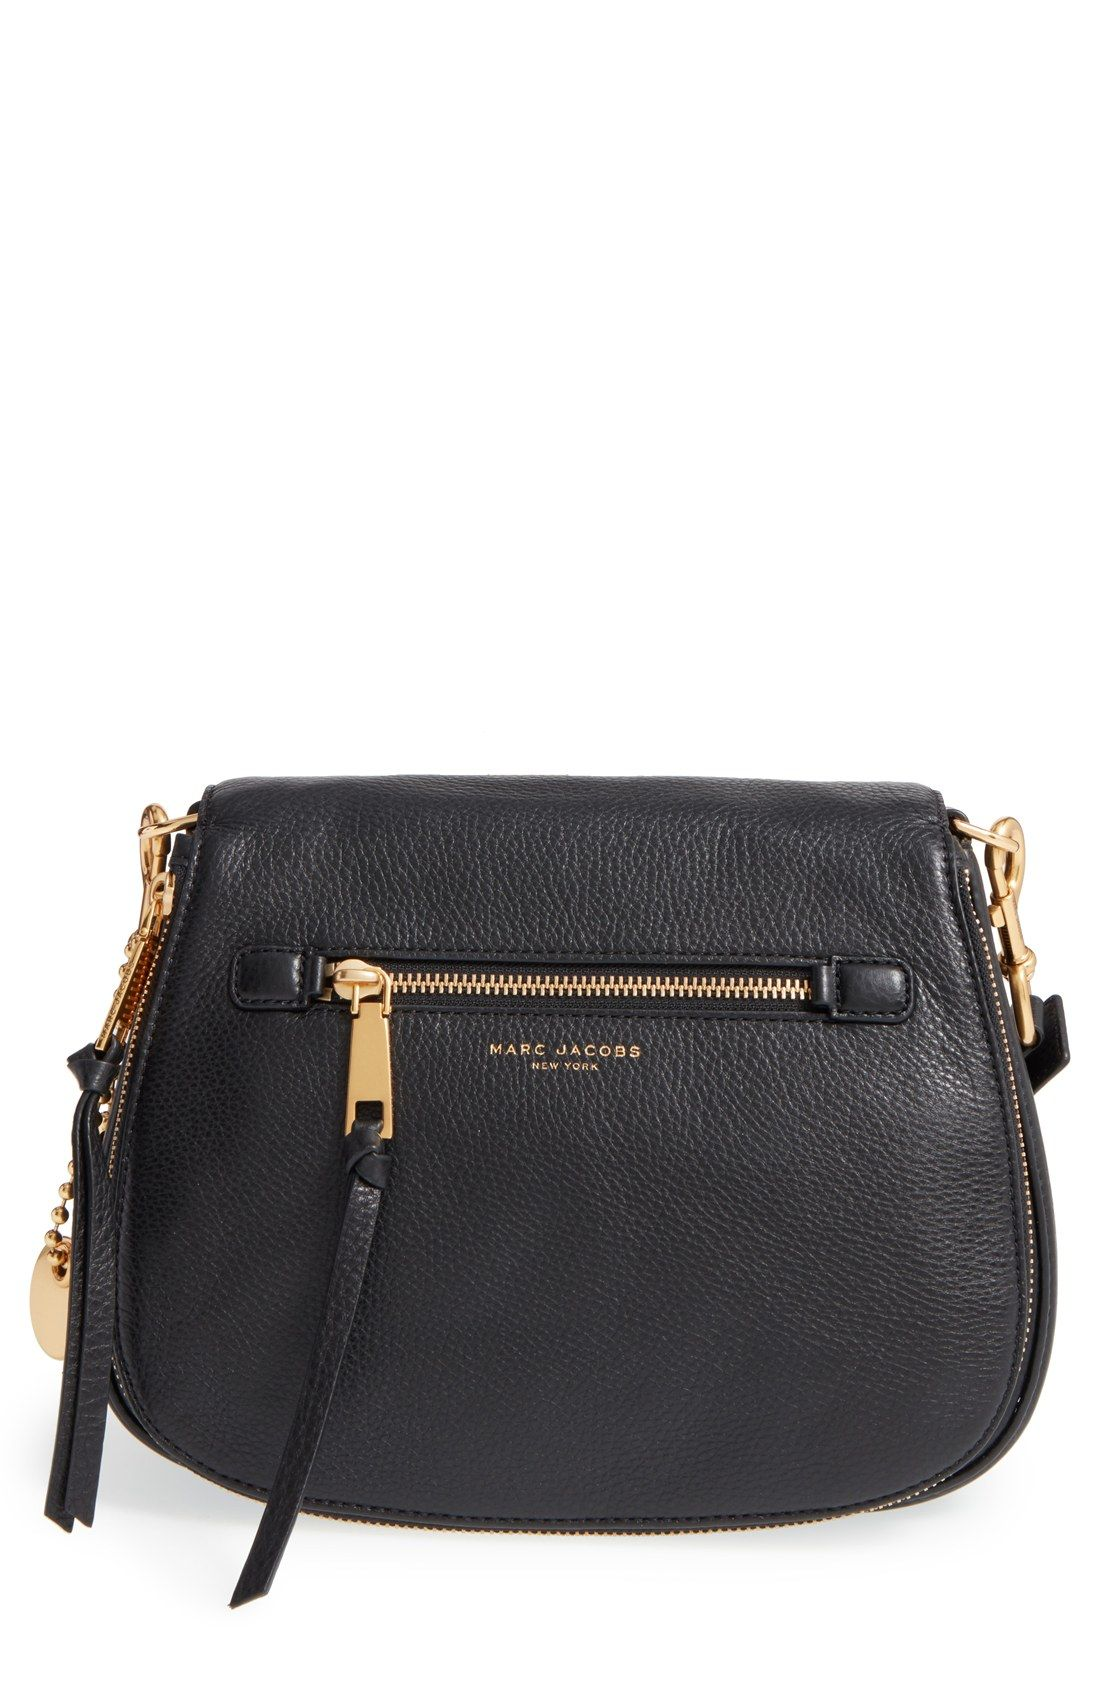 968ba9e8eba90 This crossbody bag from Marc Jacbos has a saddle-bag silhouette and gilded  hardware to polish the look.